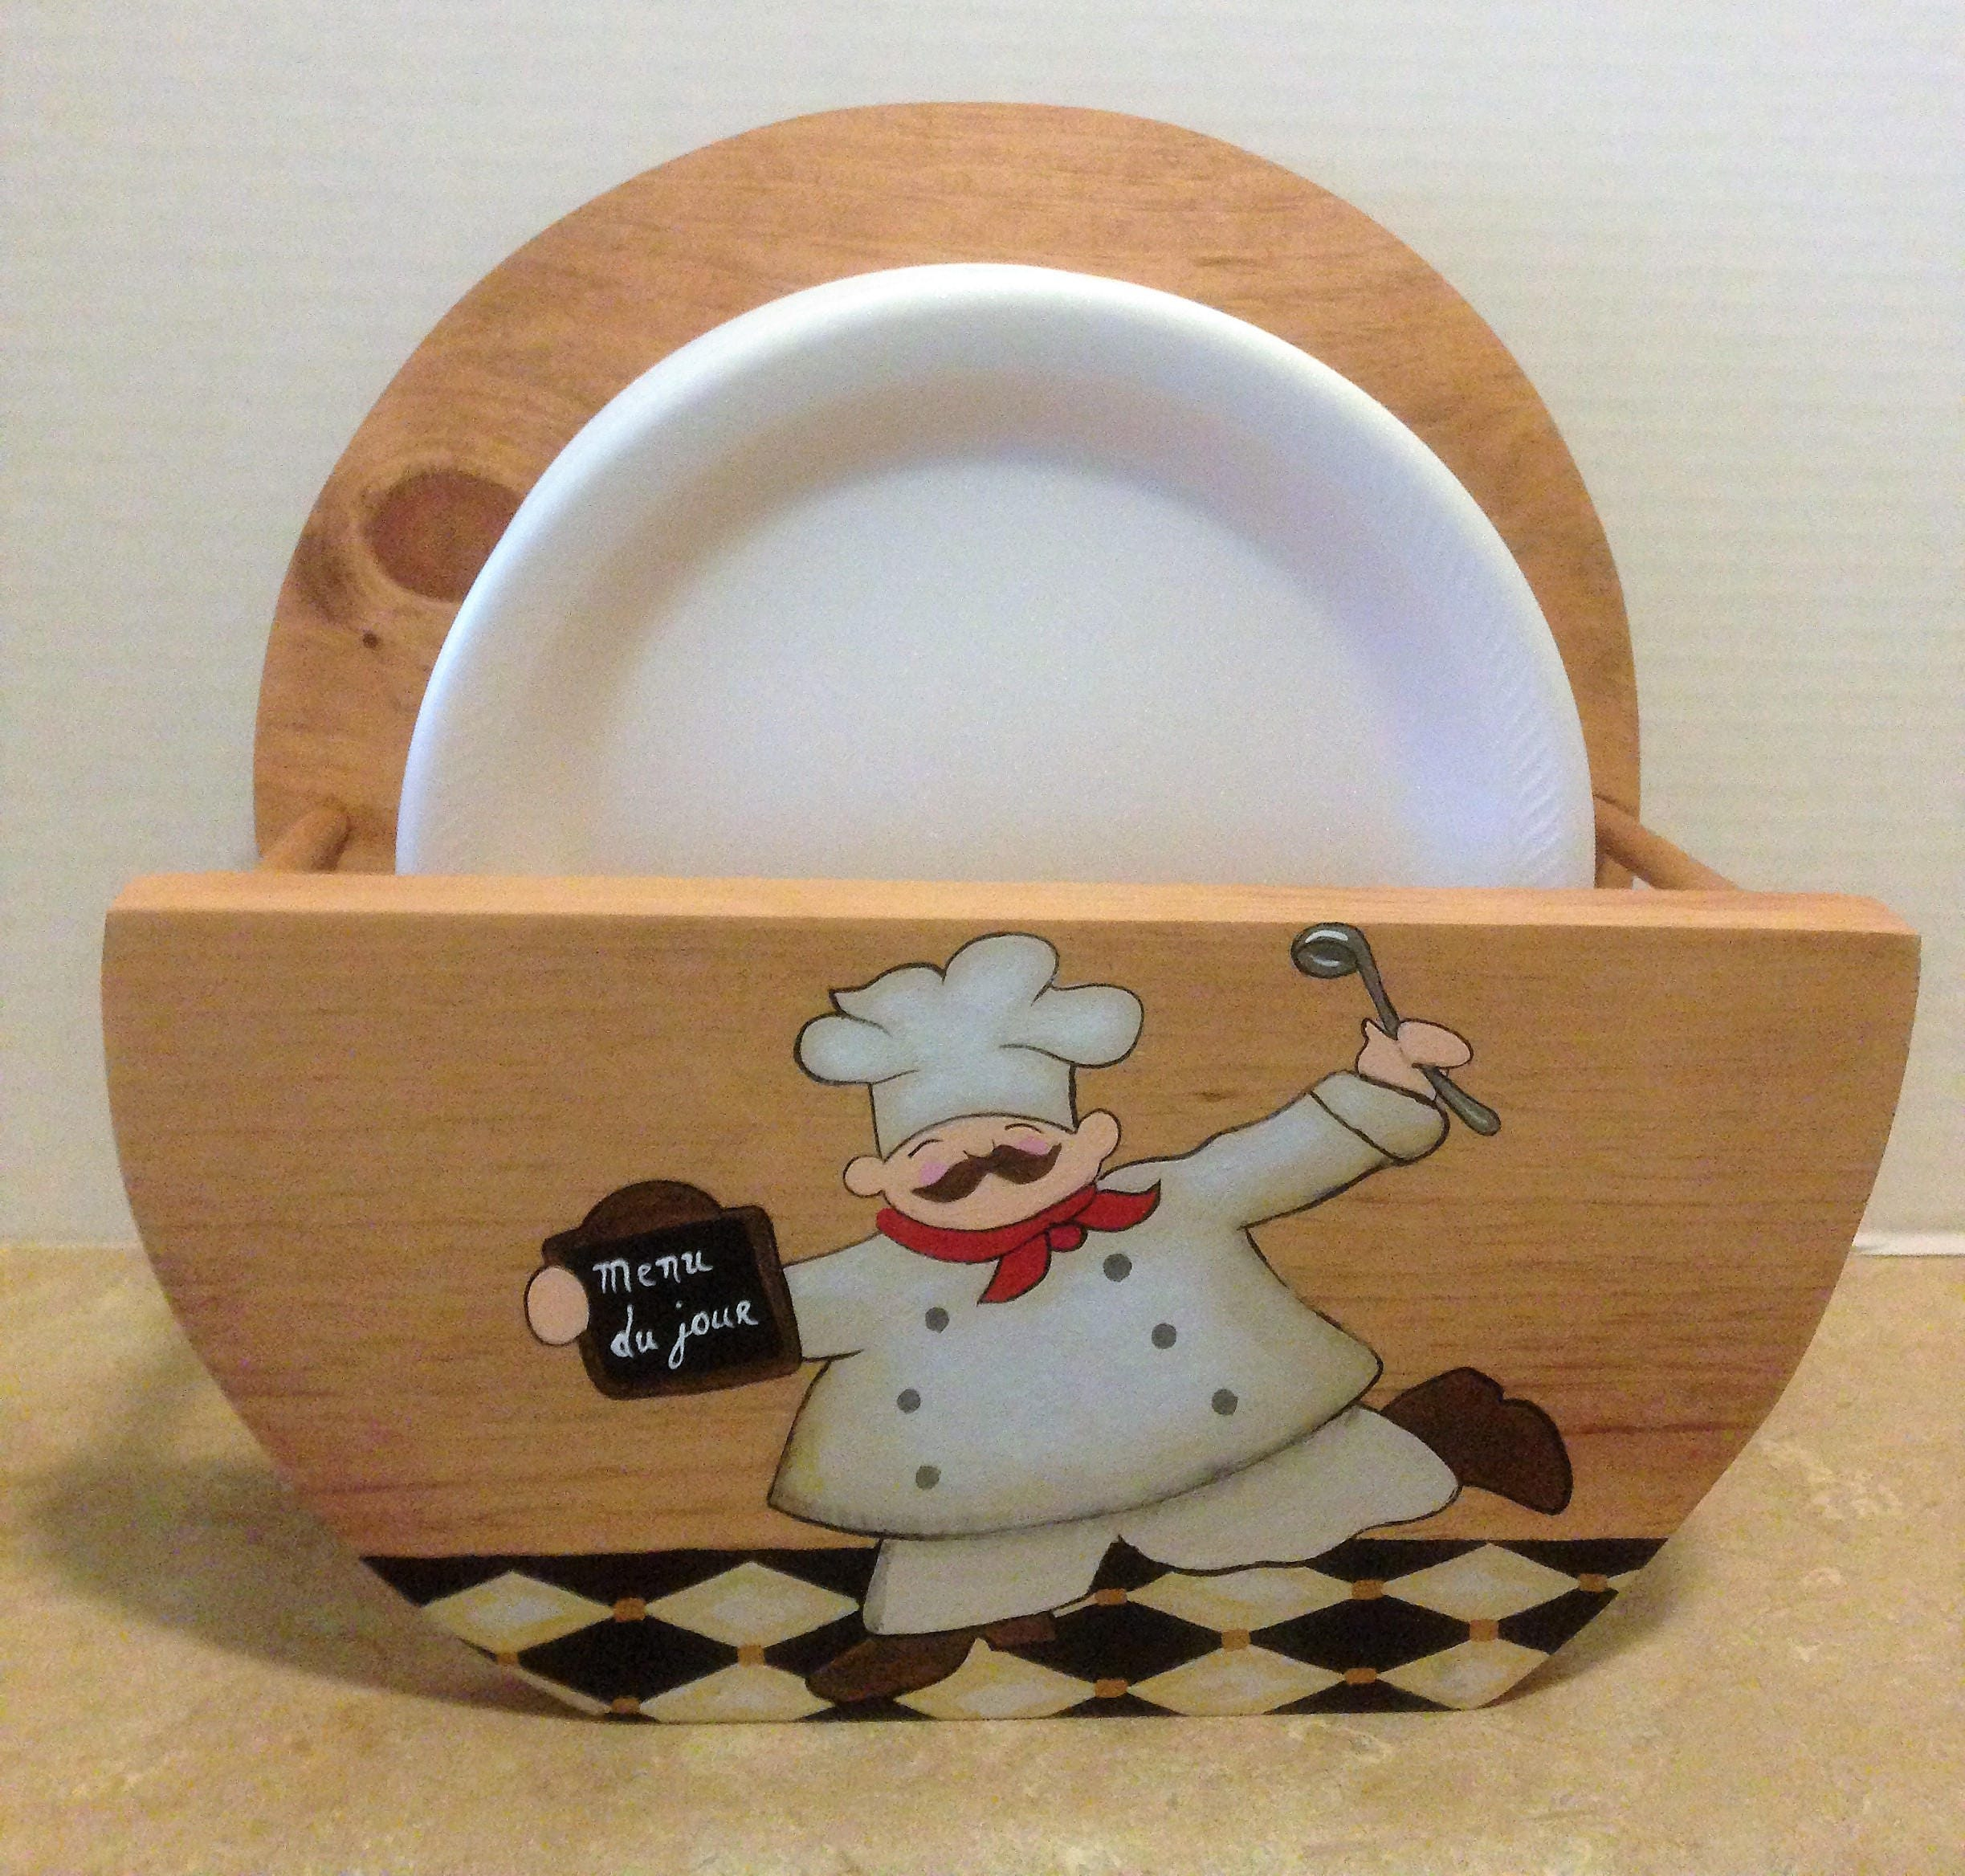 Paper Plate Holder Chef Decor Chef Kitchen Decor Holder for